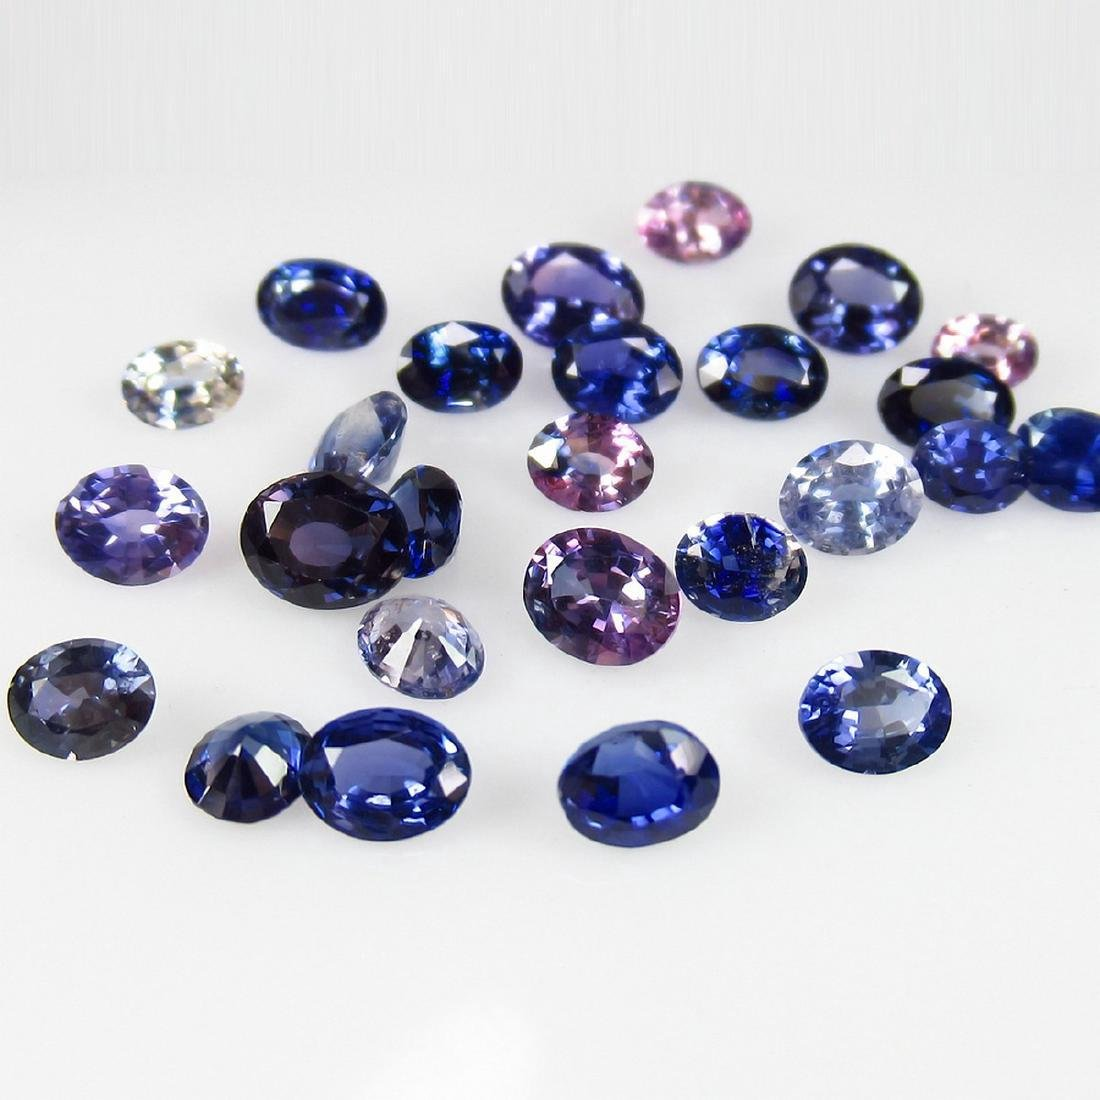 6.08 Carat Natural 26 Loose Unheated Blue Sapphire Oval